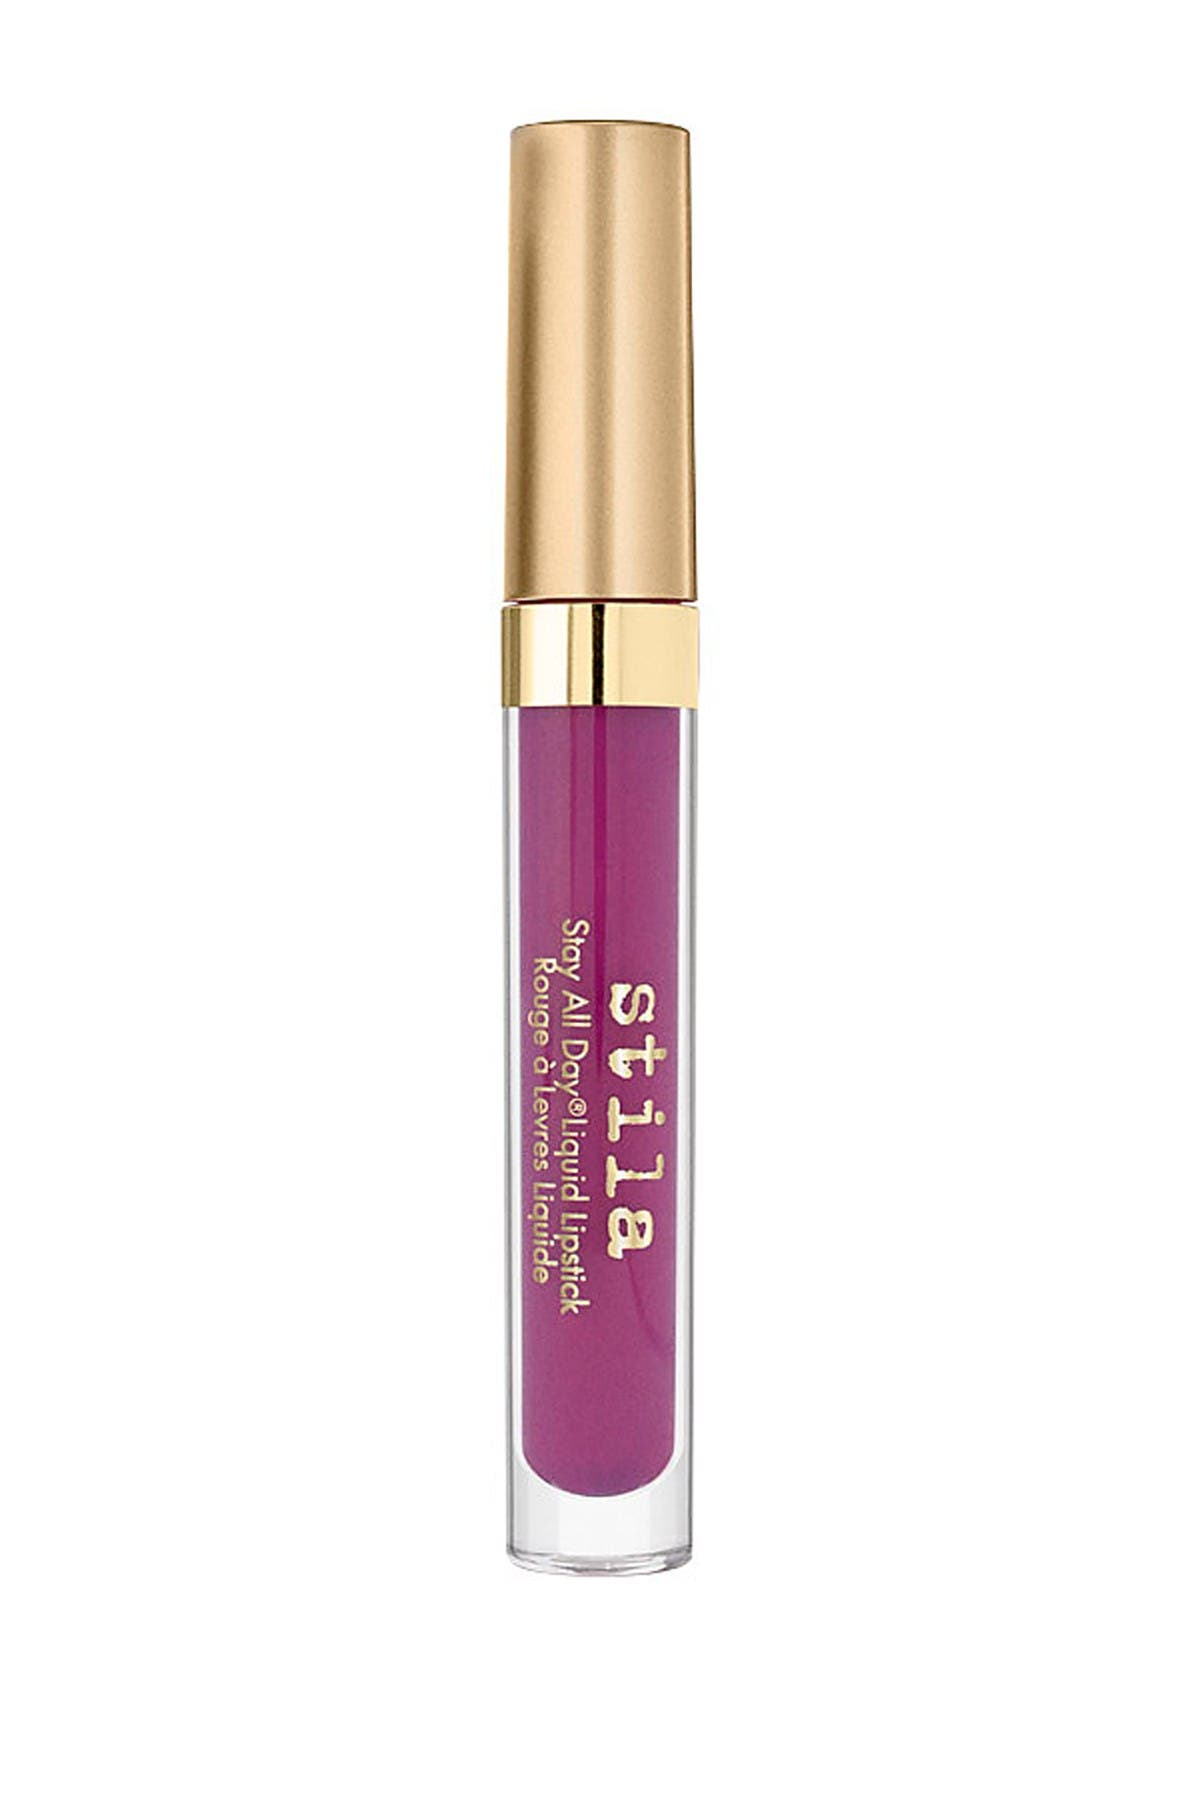 Image of Stila Stay All Day Liquid Lipstick - Como